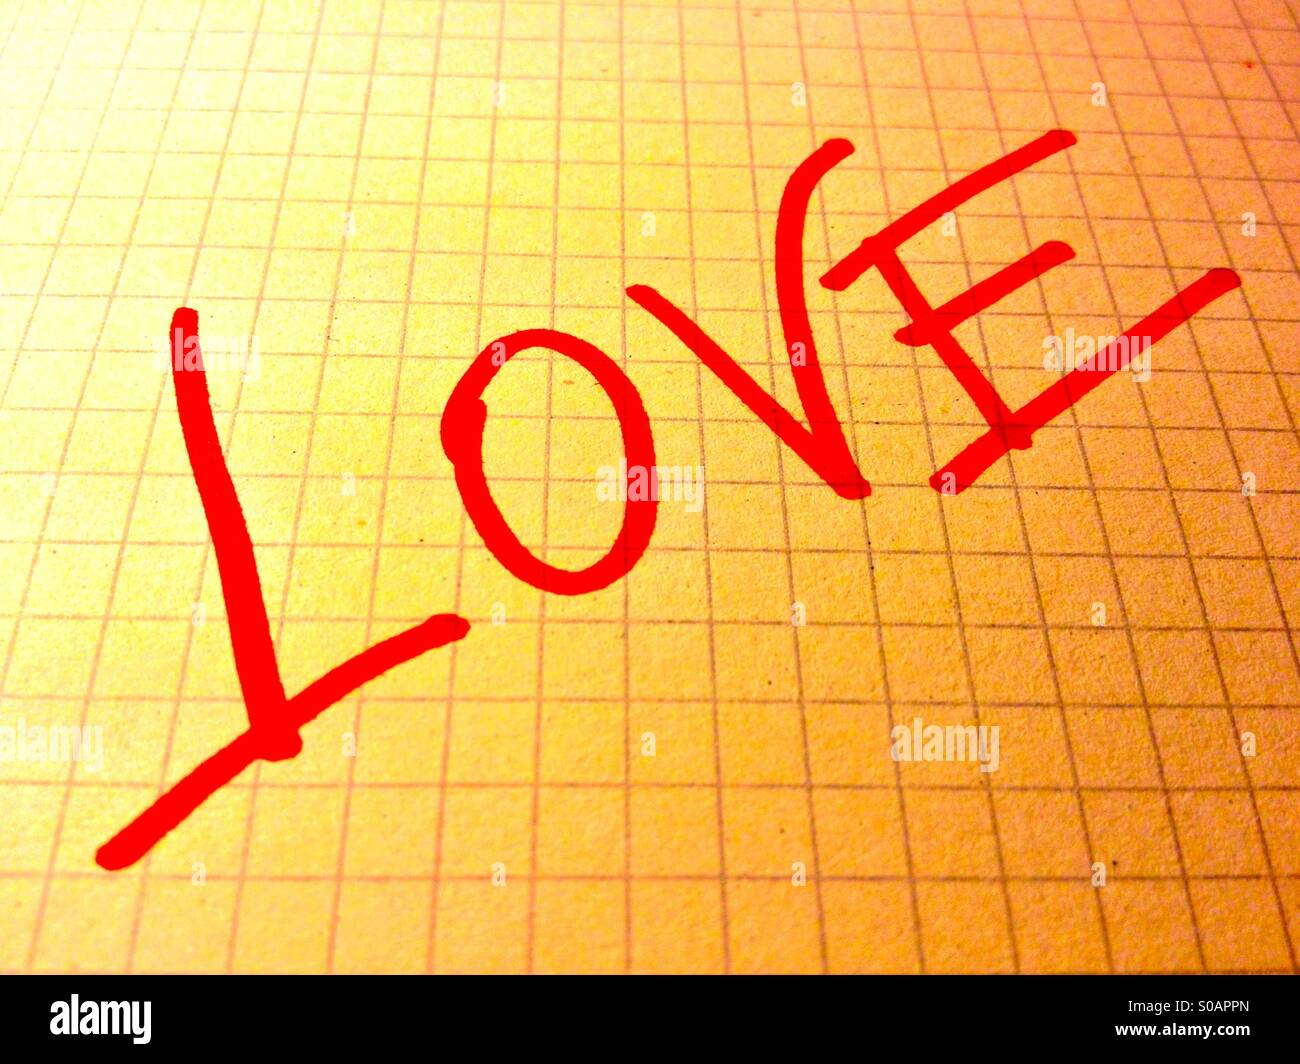 Love on paper - Stock Image